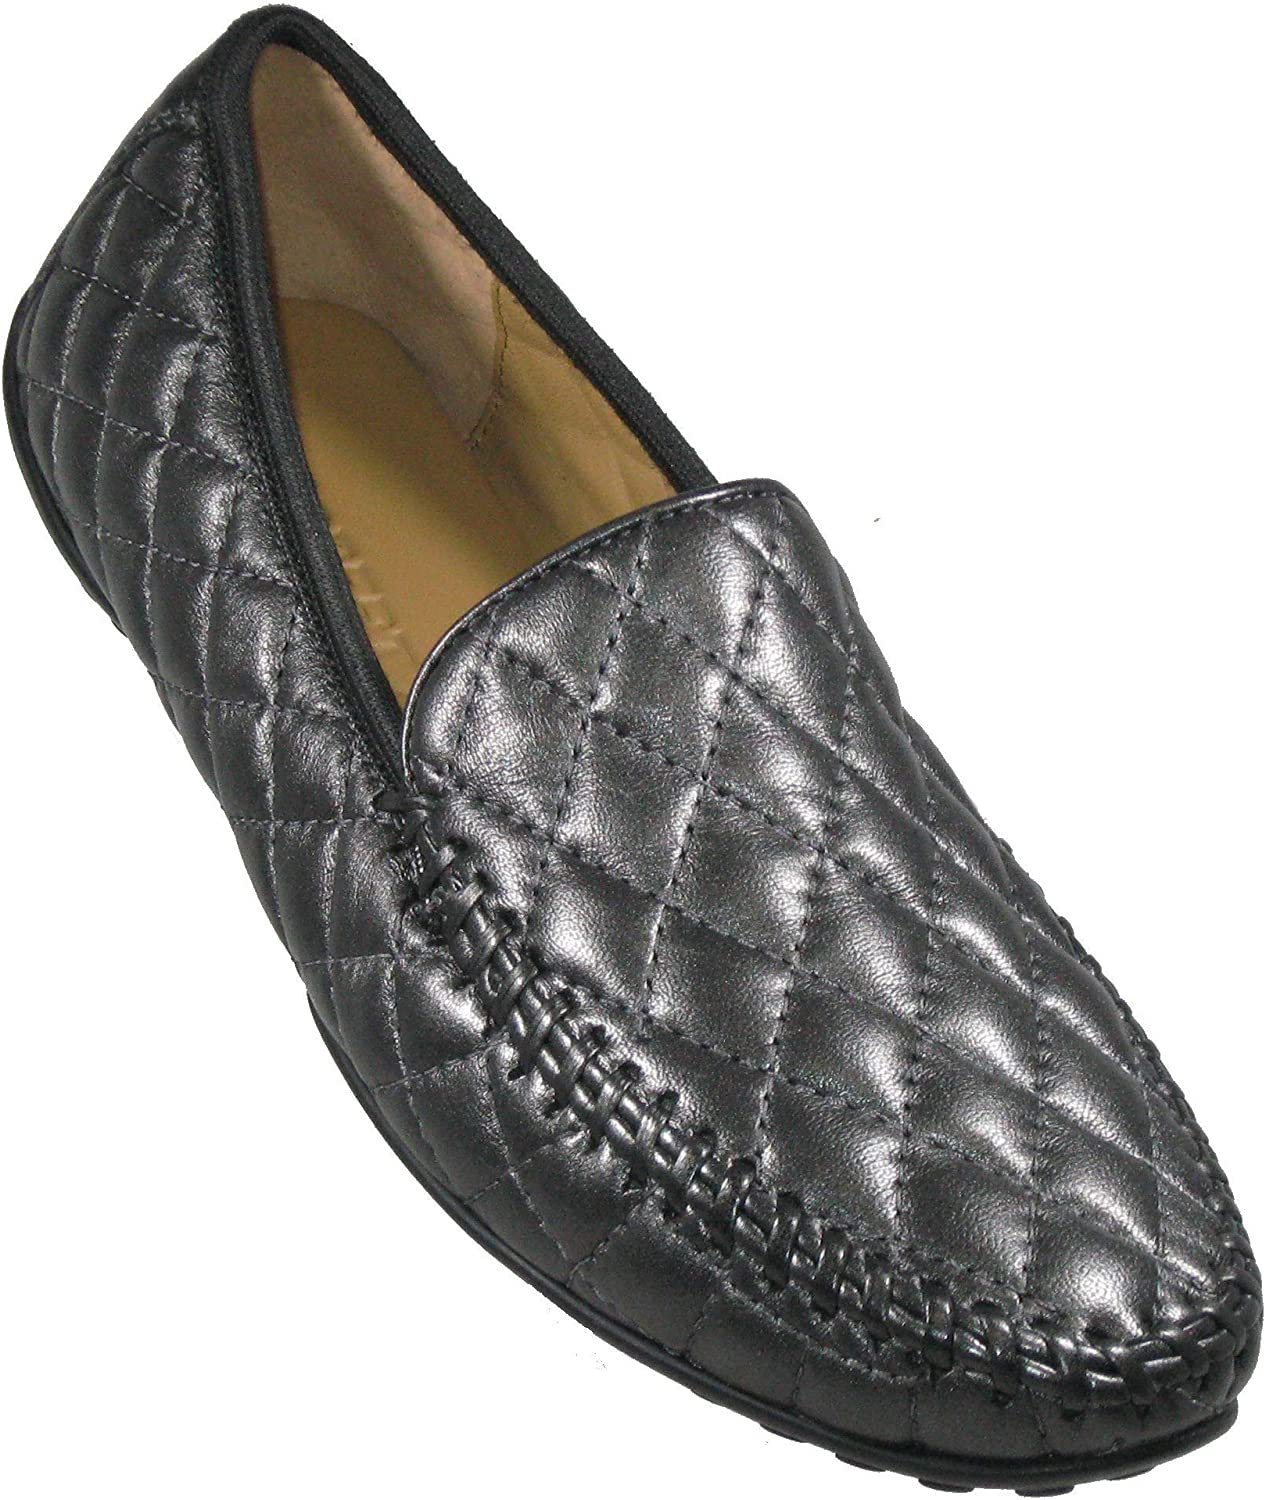 Robert Zur Women's 'Quana' Gunmetal Quilted Leather Moccasin